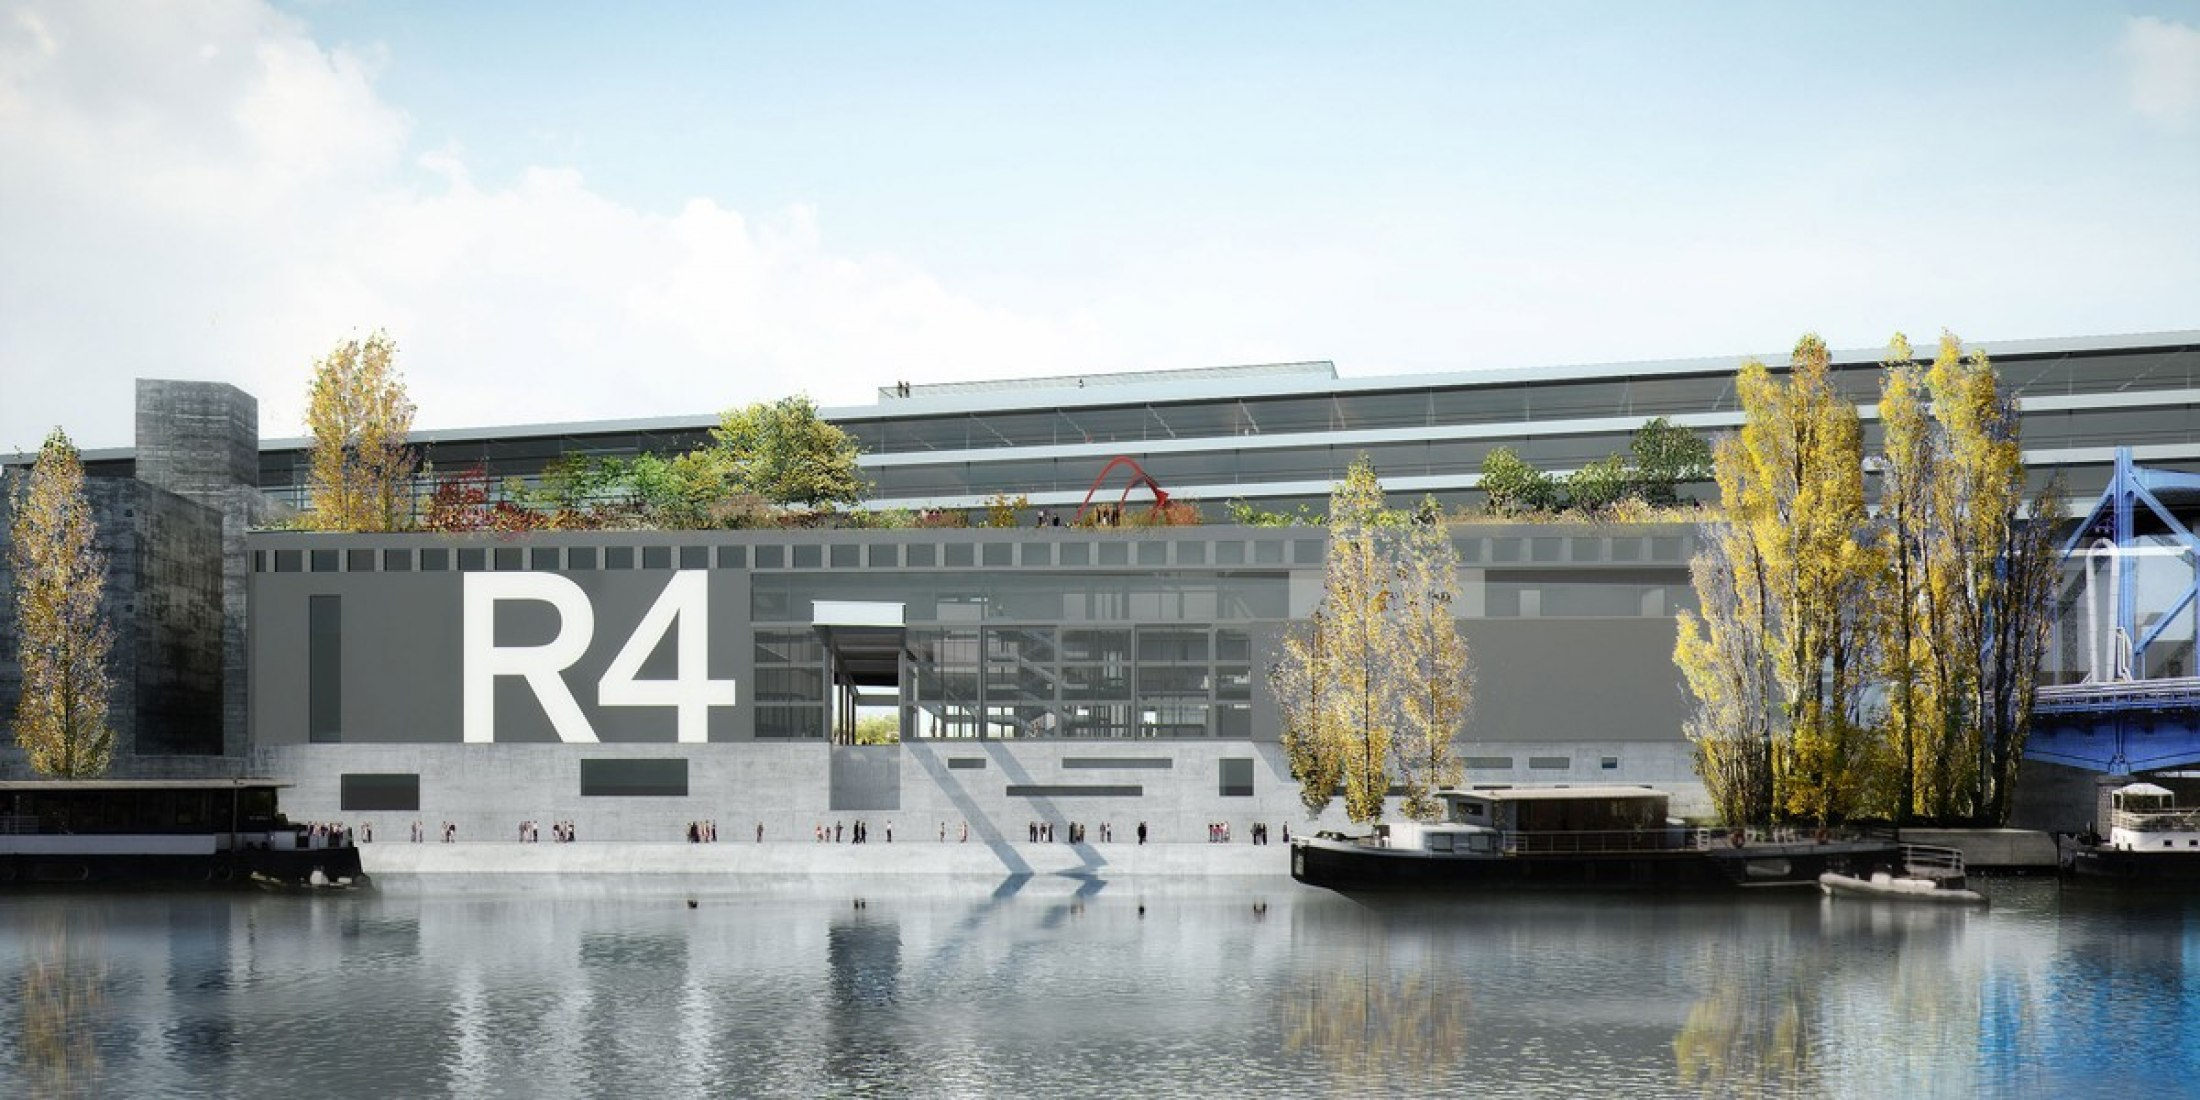 A rendering of R4 façade, July 2012 © Ateliers Jean Nouvel.